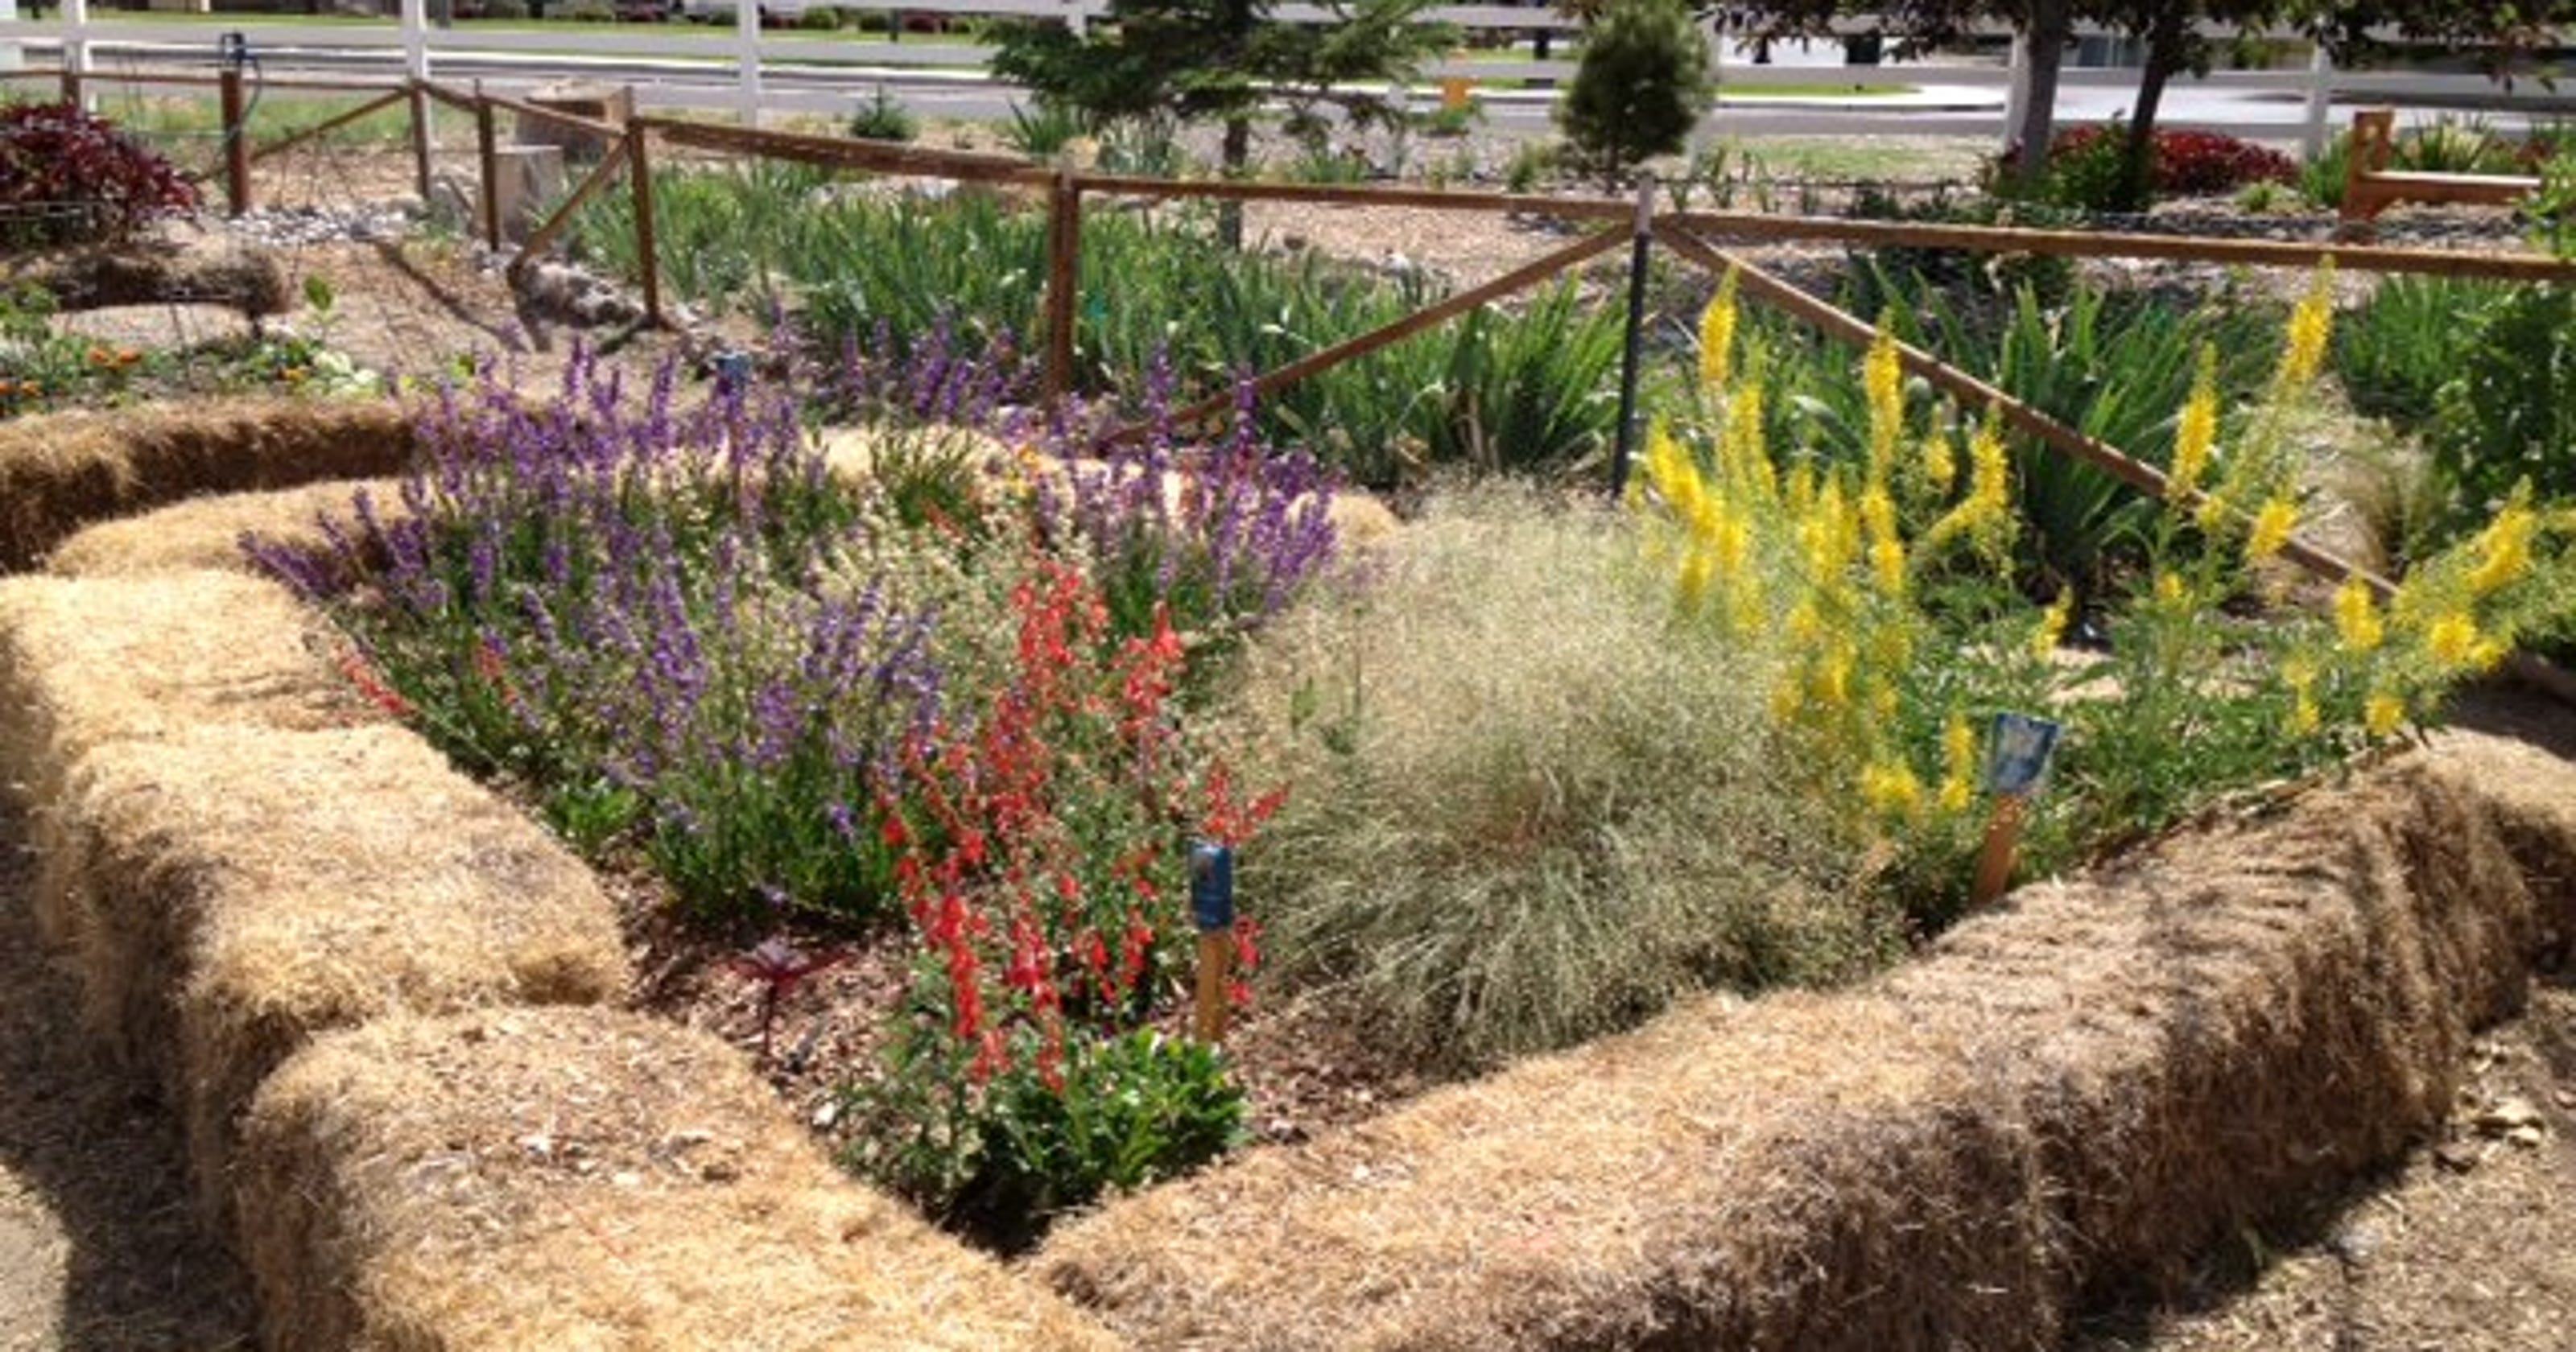 Plant wildflowers now to attract bees, butterflies later